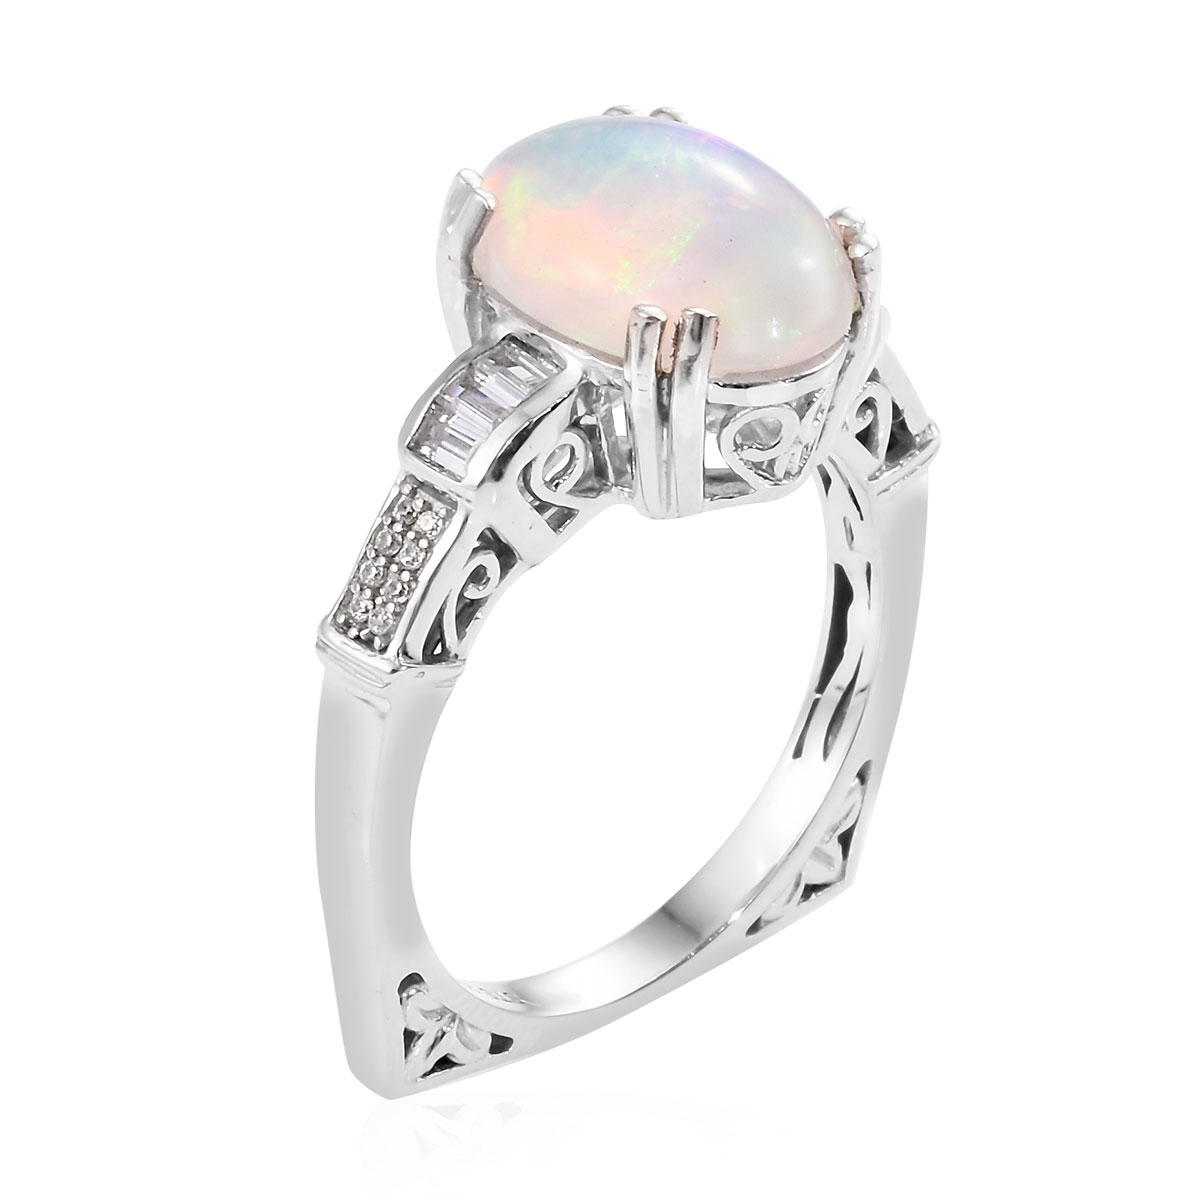 Opal Zircon Promise Ring 925 Sterling Silver Platinum ...